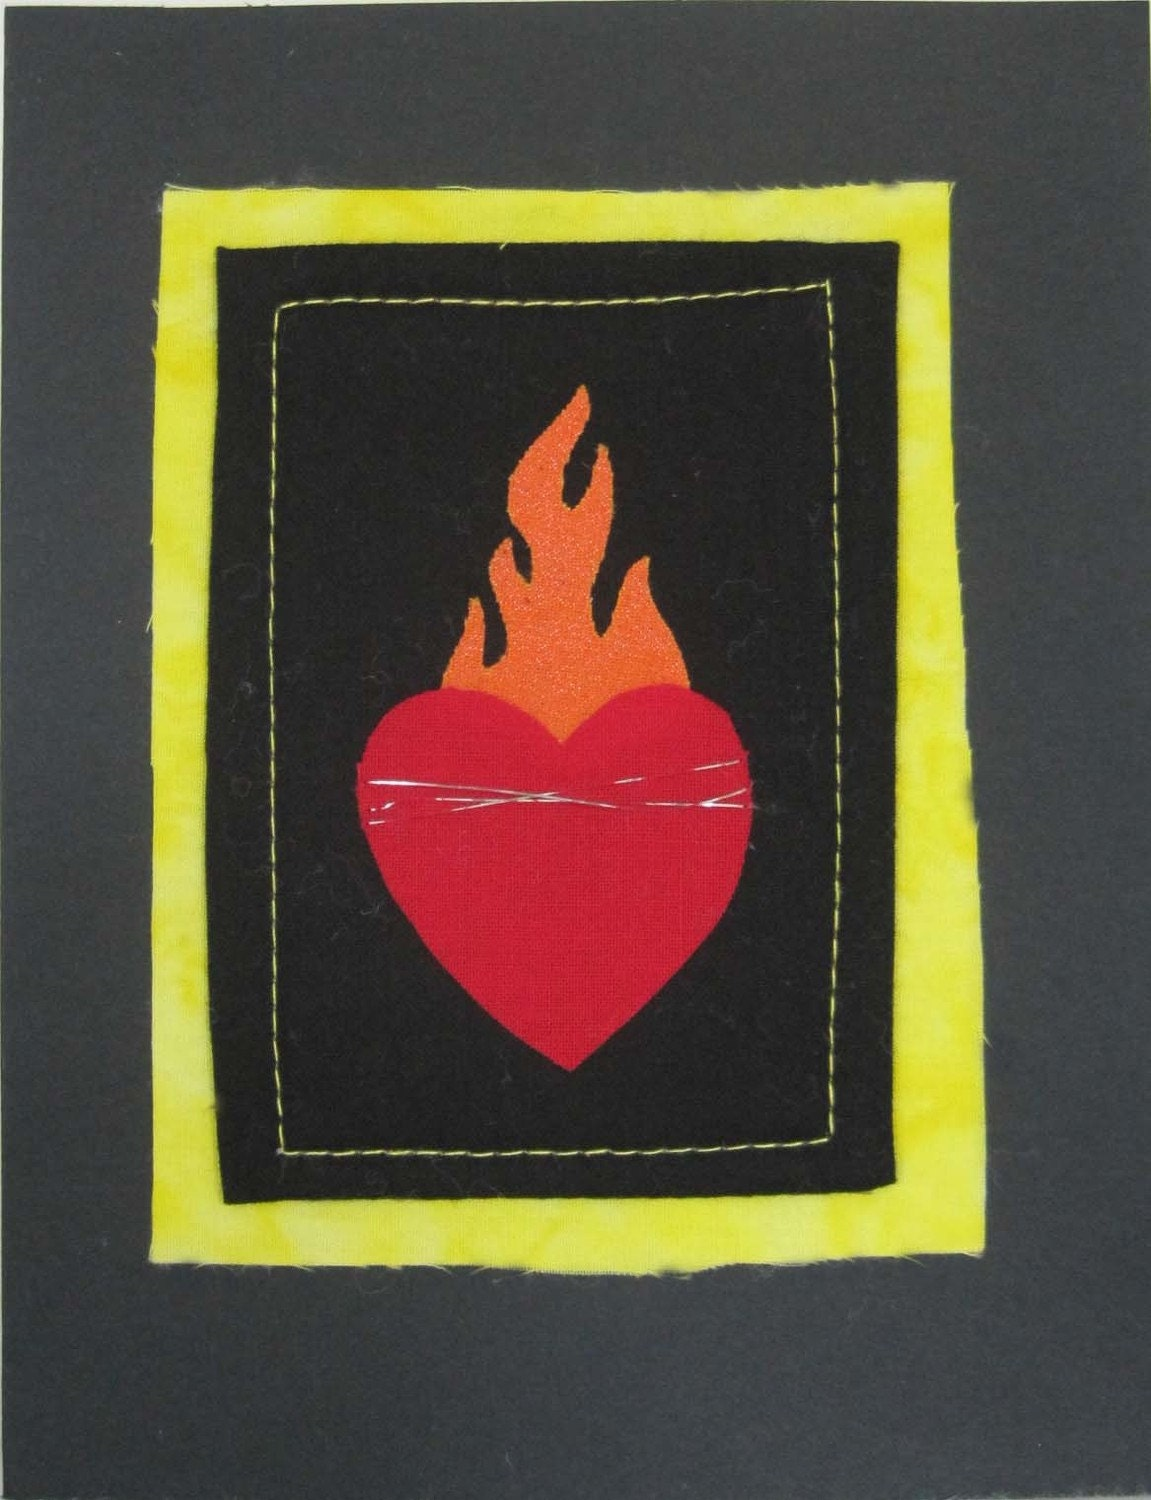 Valentine's Day - Flaming Heart Card